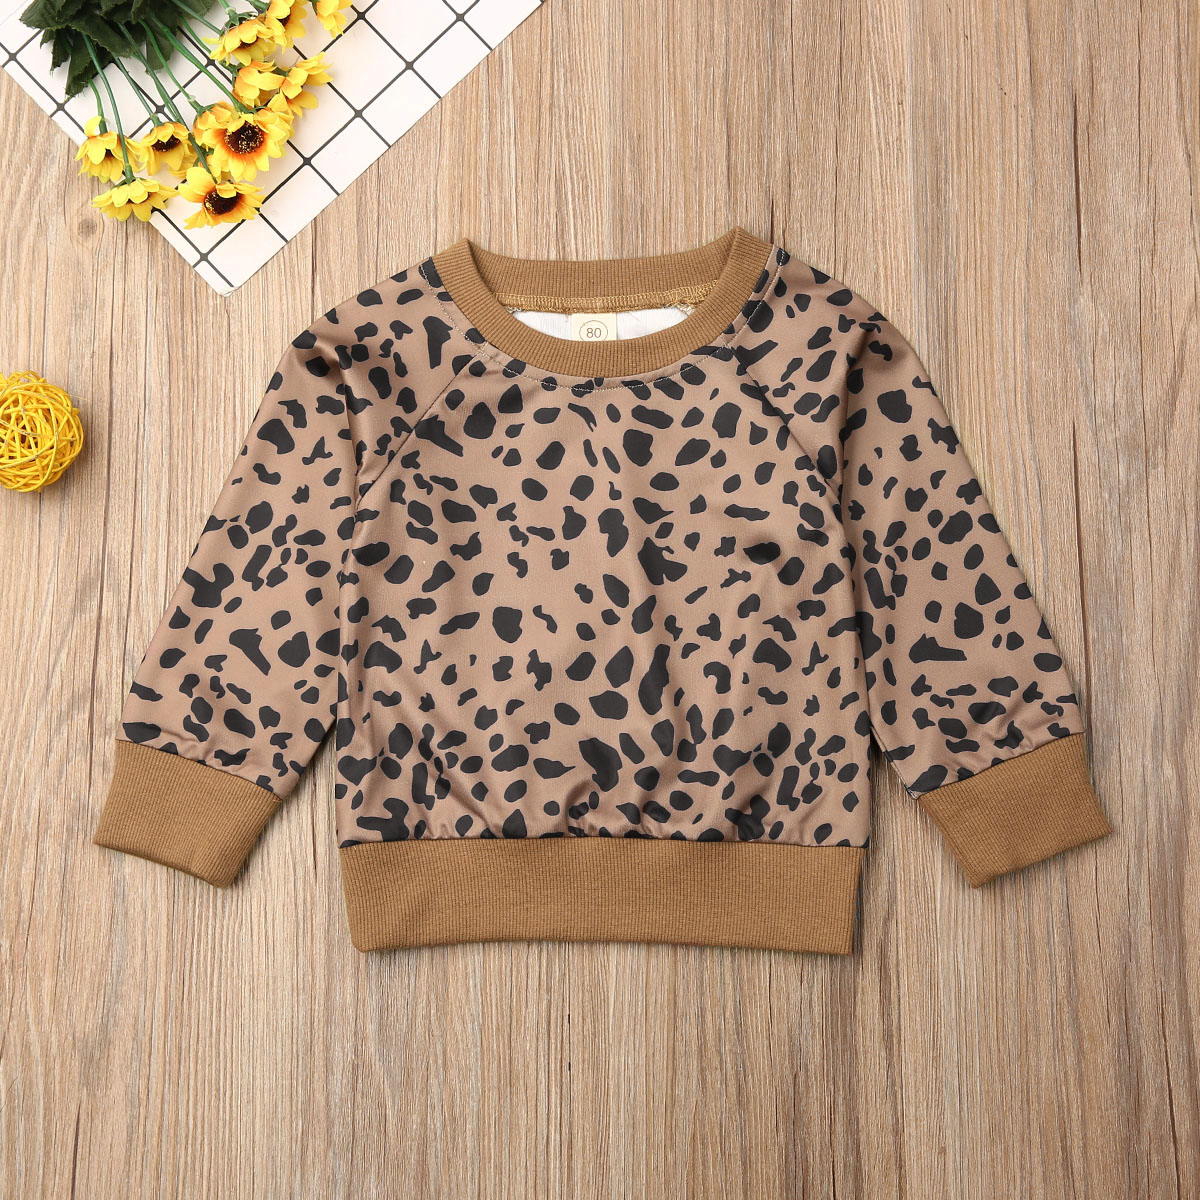 Pudcoco Newborn Baby Girl Clothes Leopard Print Long Sleeve Cotton Pullover Tops Autumn Clothes